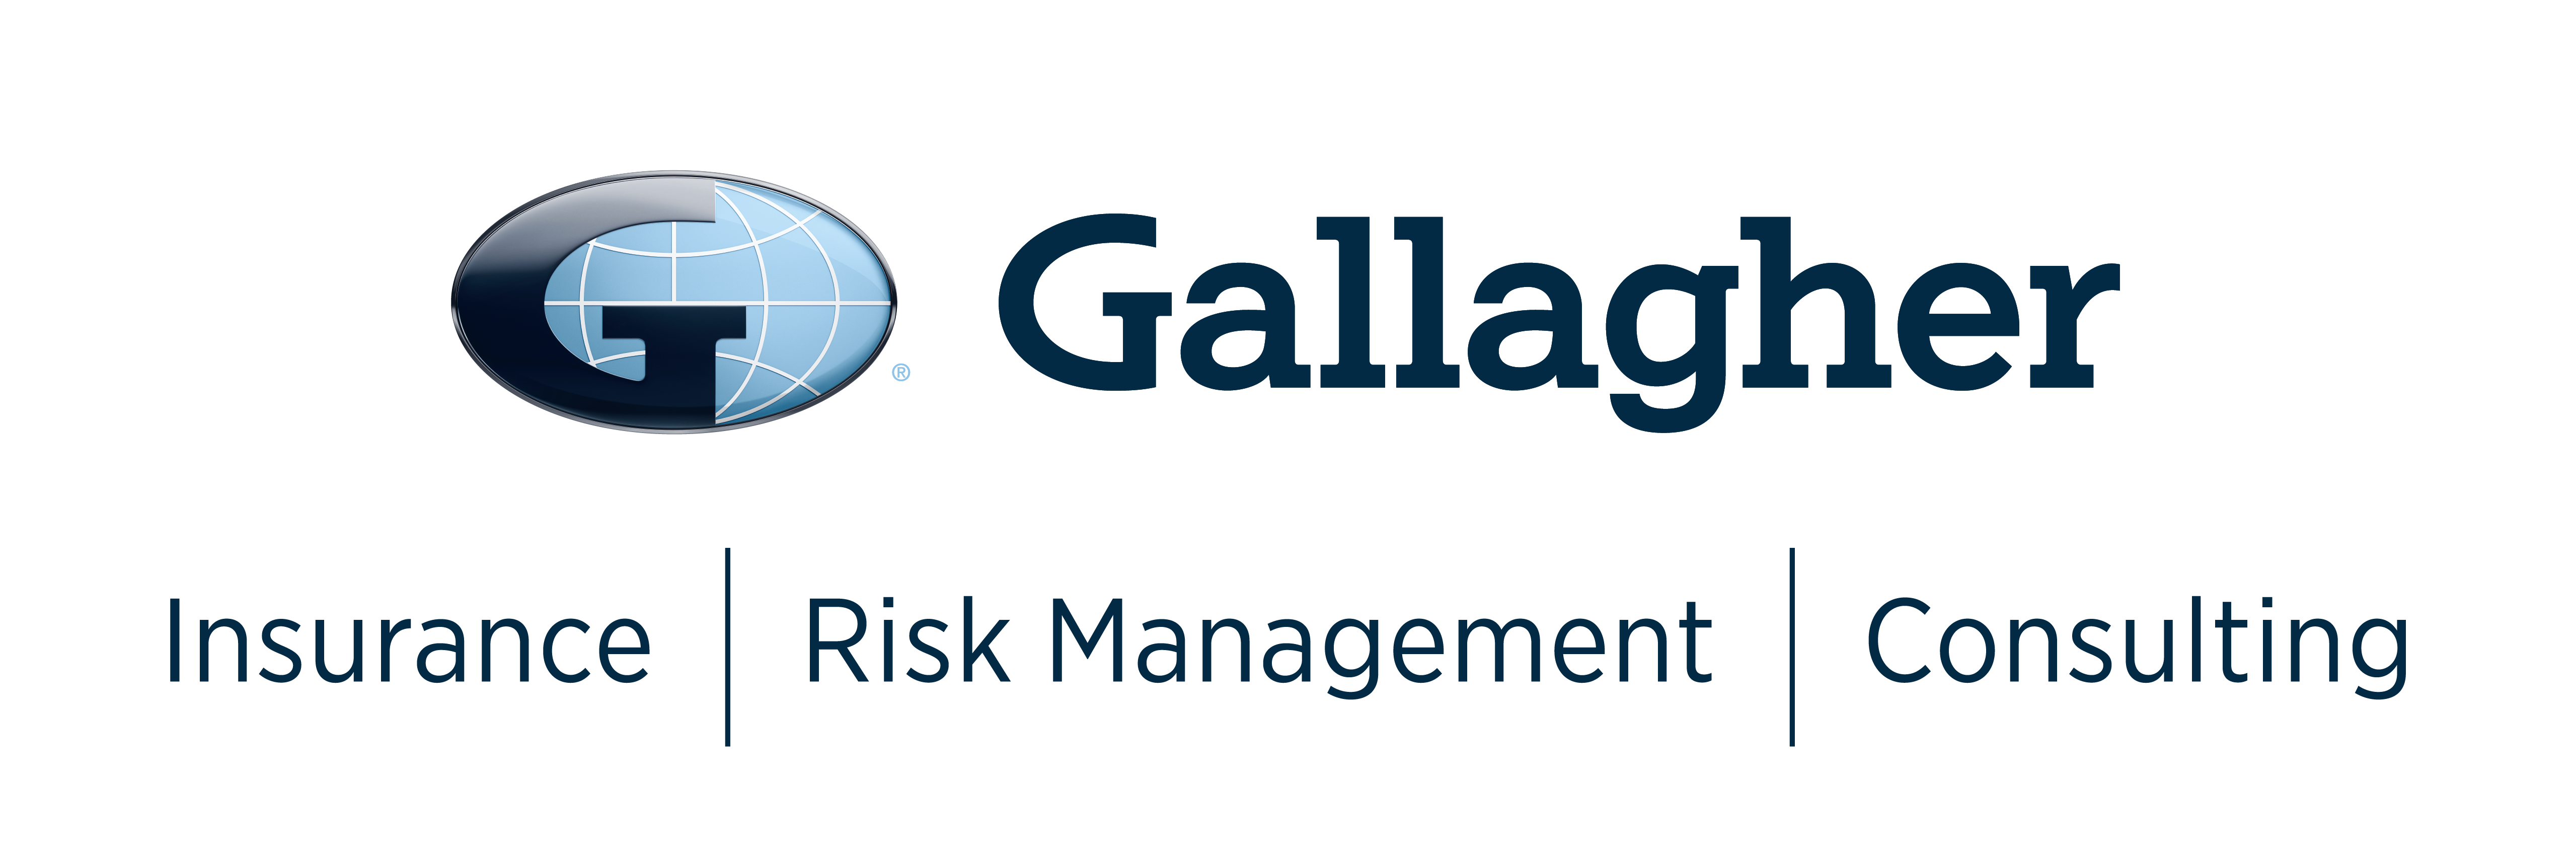 Gallagher - Logo - Business in Networking Group.